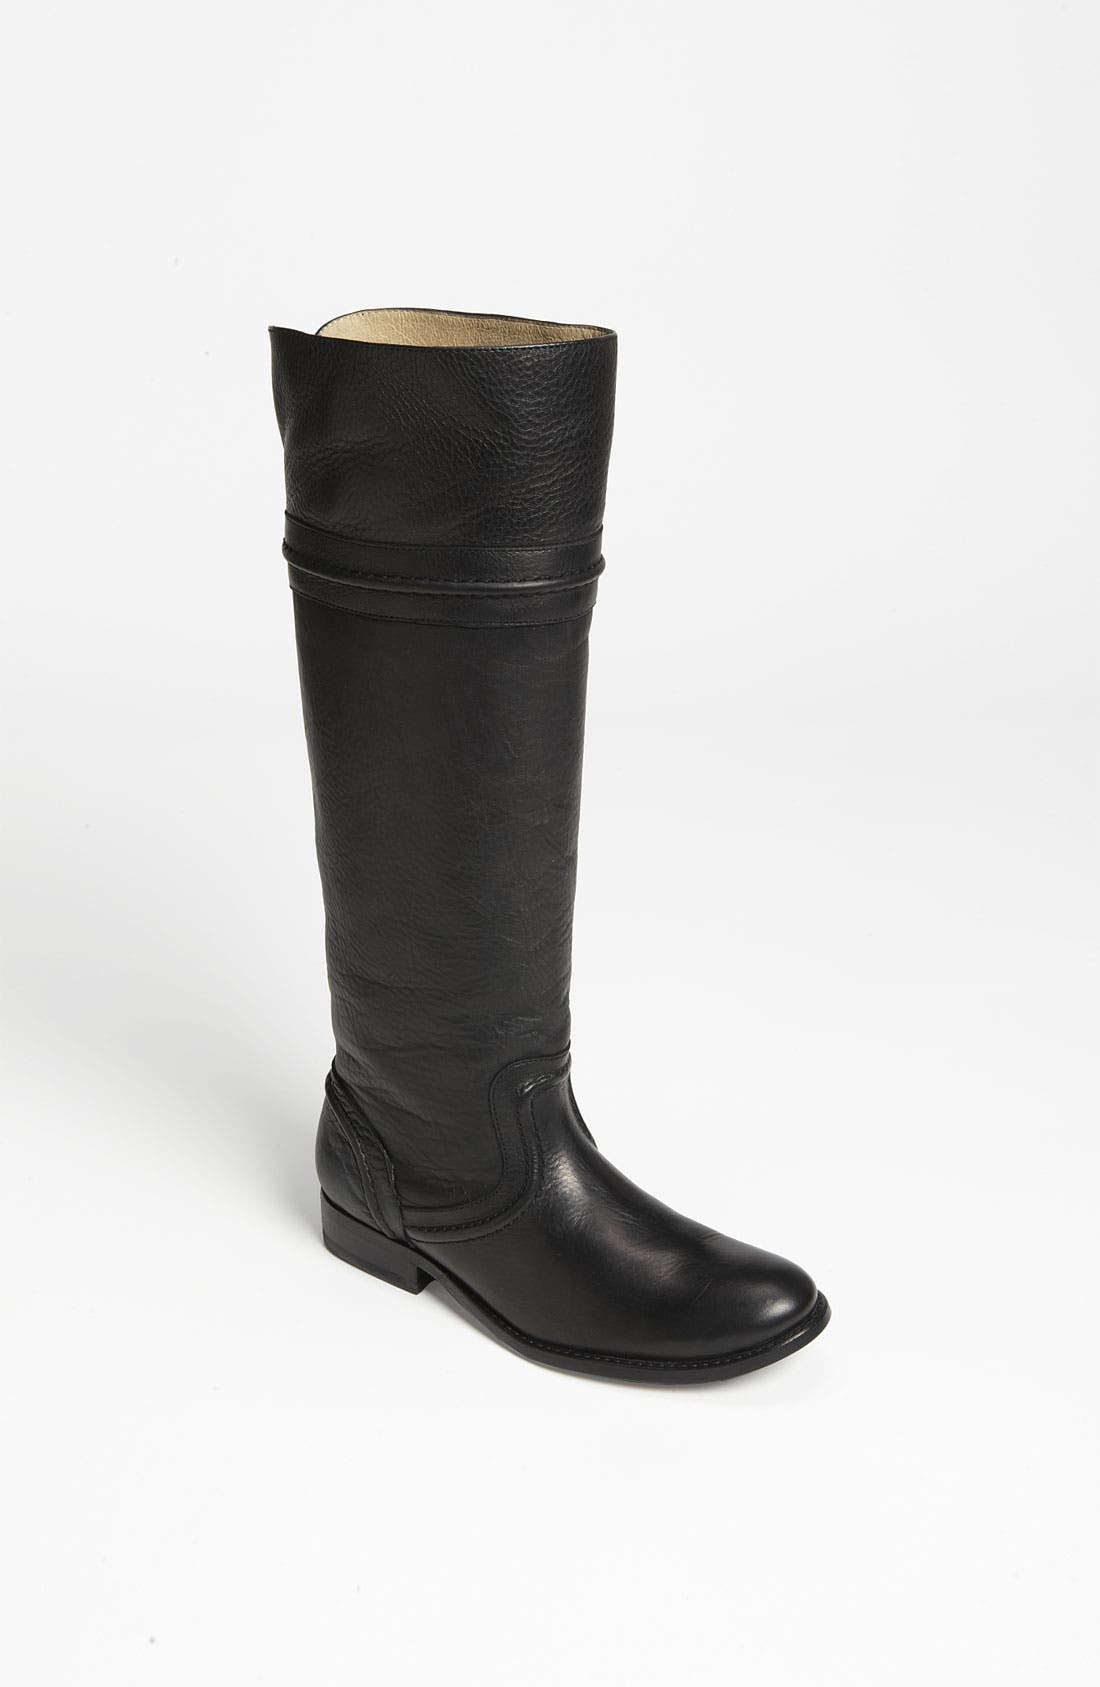 Alternate Image 1 Selected - Frye 'Melissa Trapunto' Boot